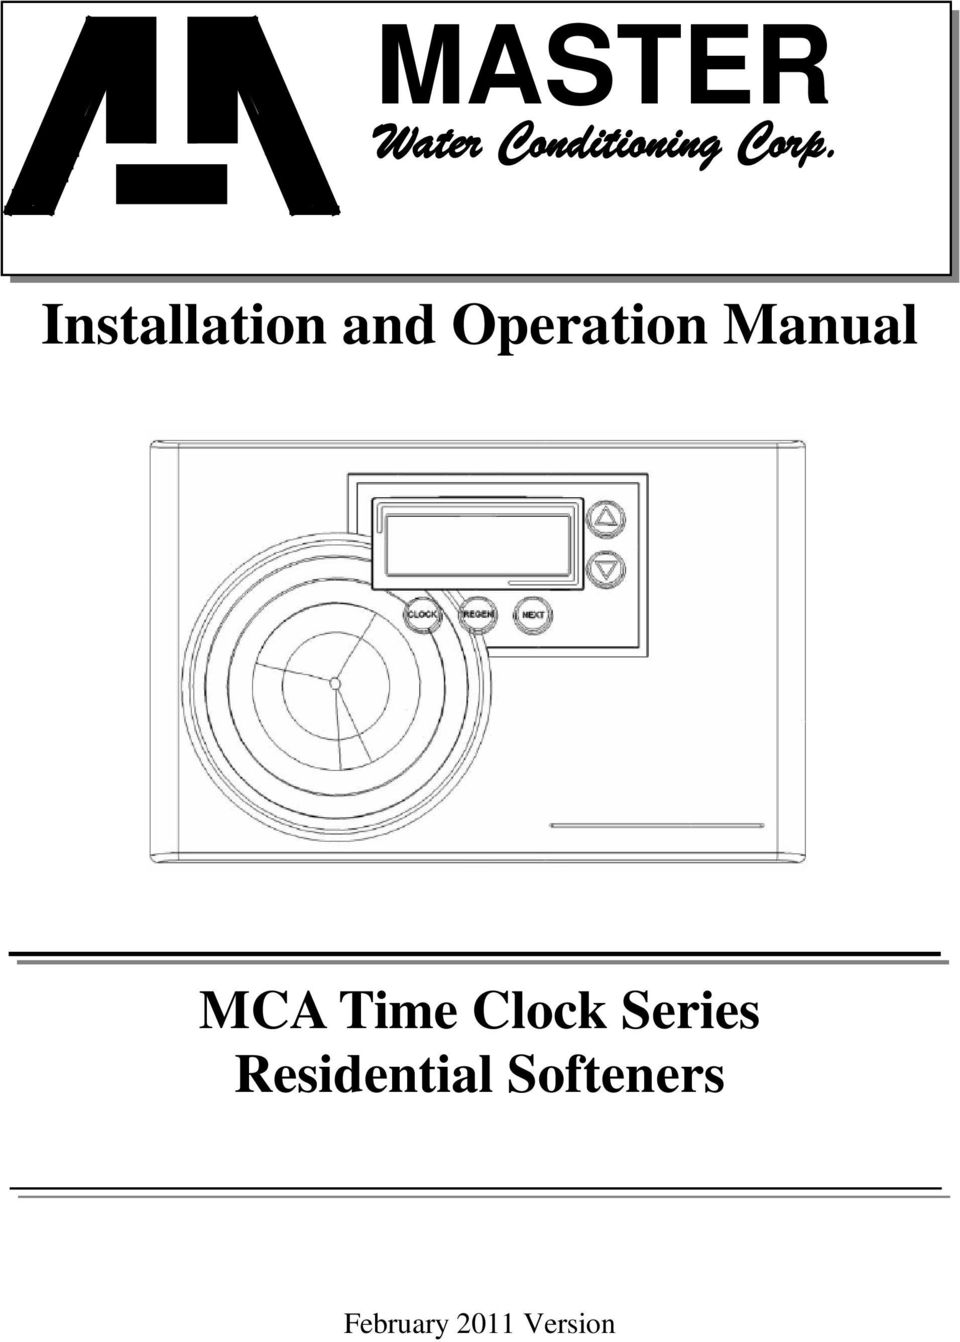 Manual MCA Time Clock Series